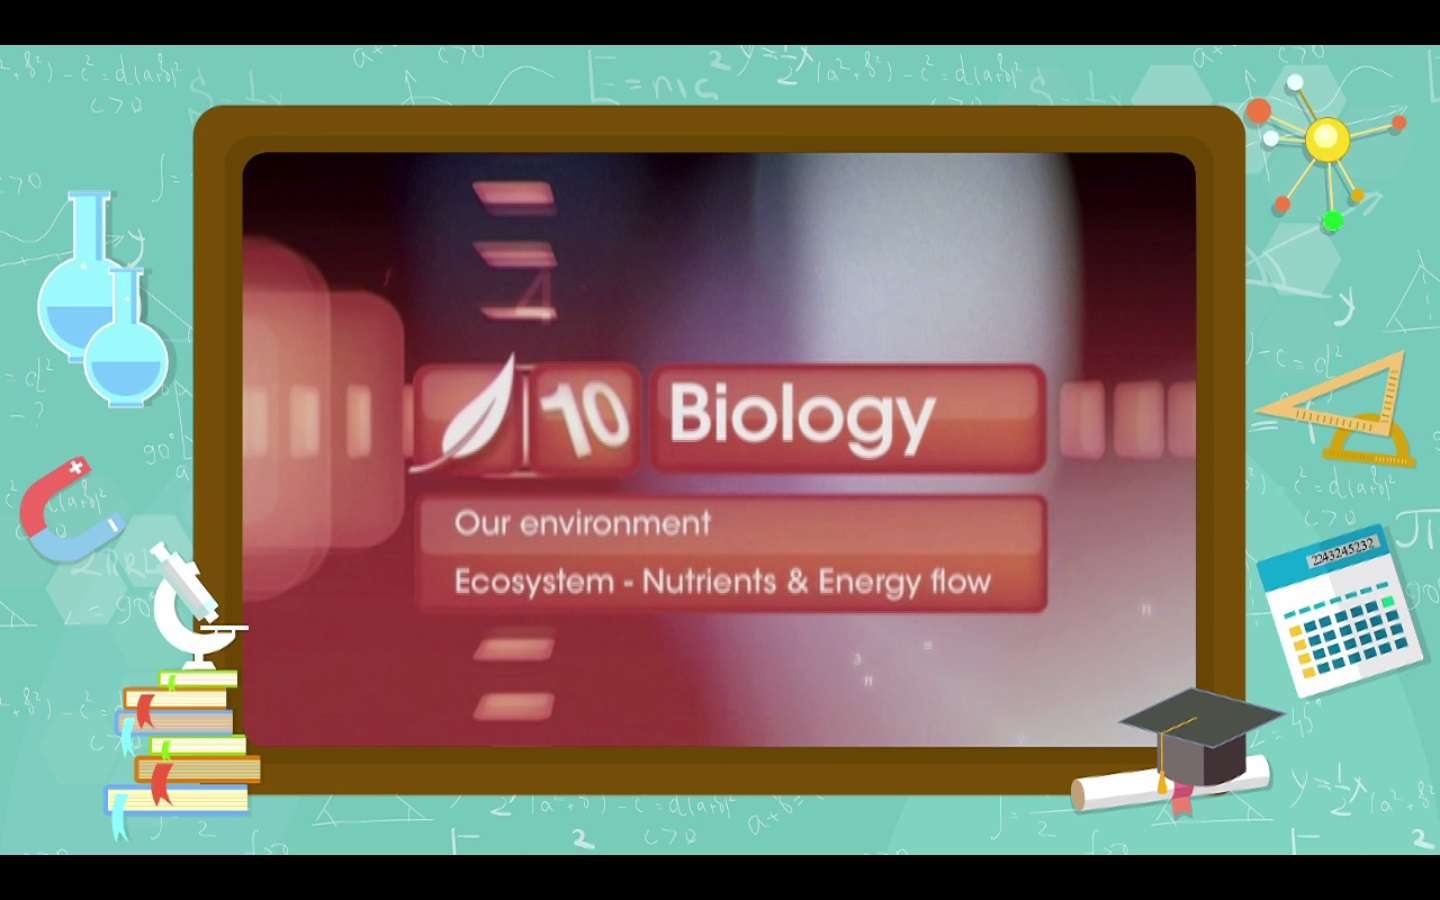 Environment - Ecosystem - Nutrients and Energy Flow